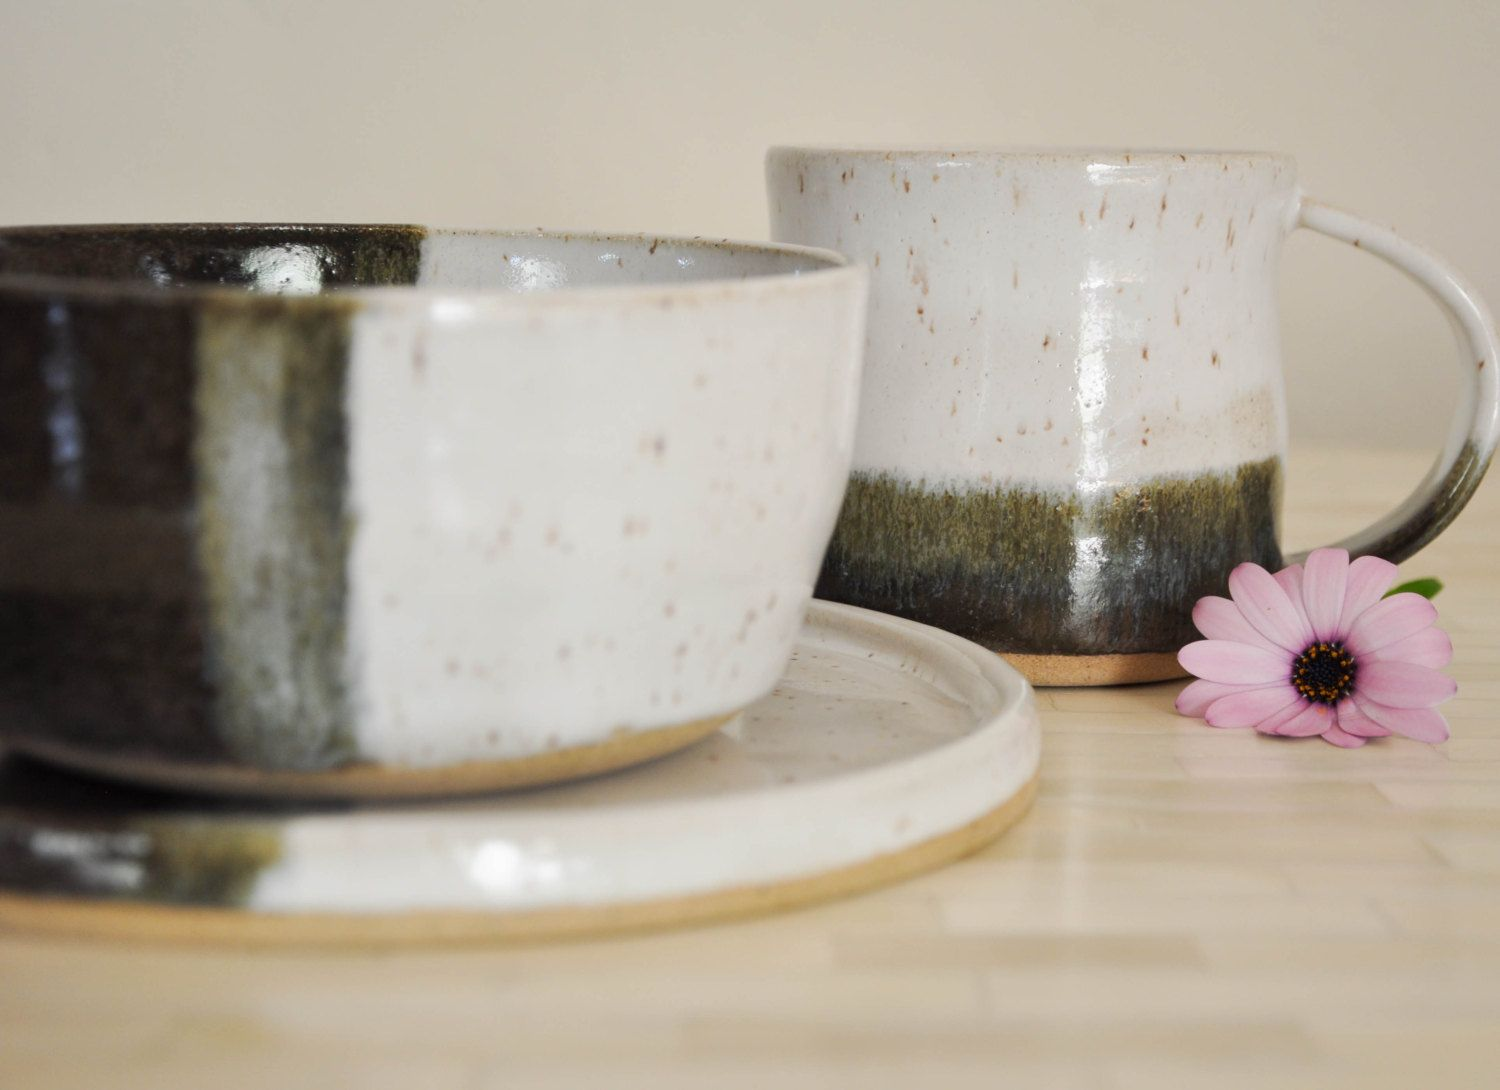 Pottery Dinnerware, Place Settings, Pottery, Pottery Dinner Plates, Wheel Thrown Pottery, Pottery Dinnerware, Handmade, Made to Order by ShawnaPiercePottery on Etsy